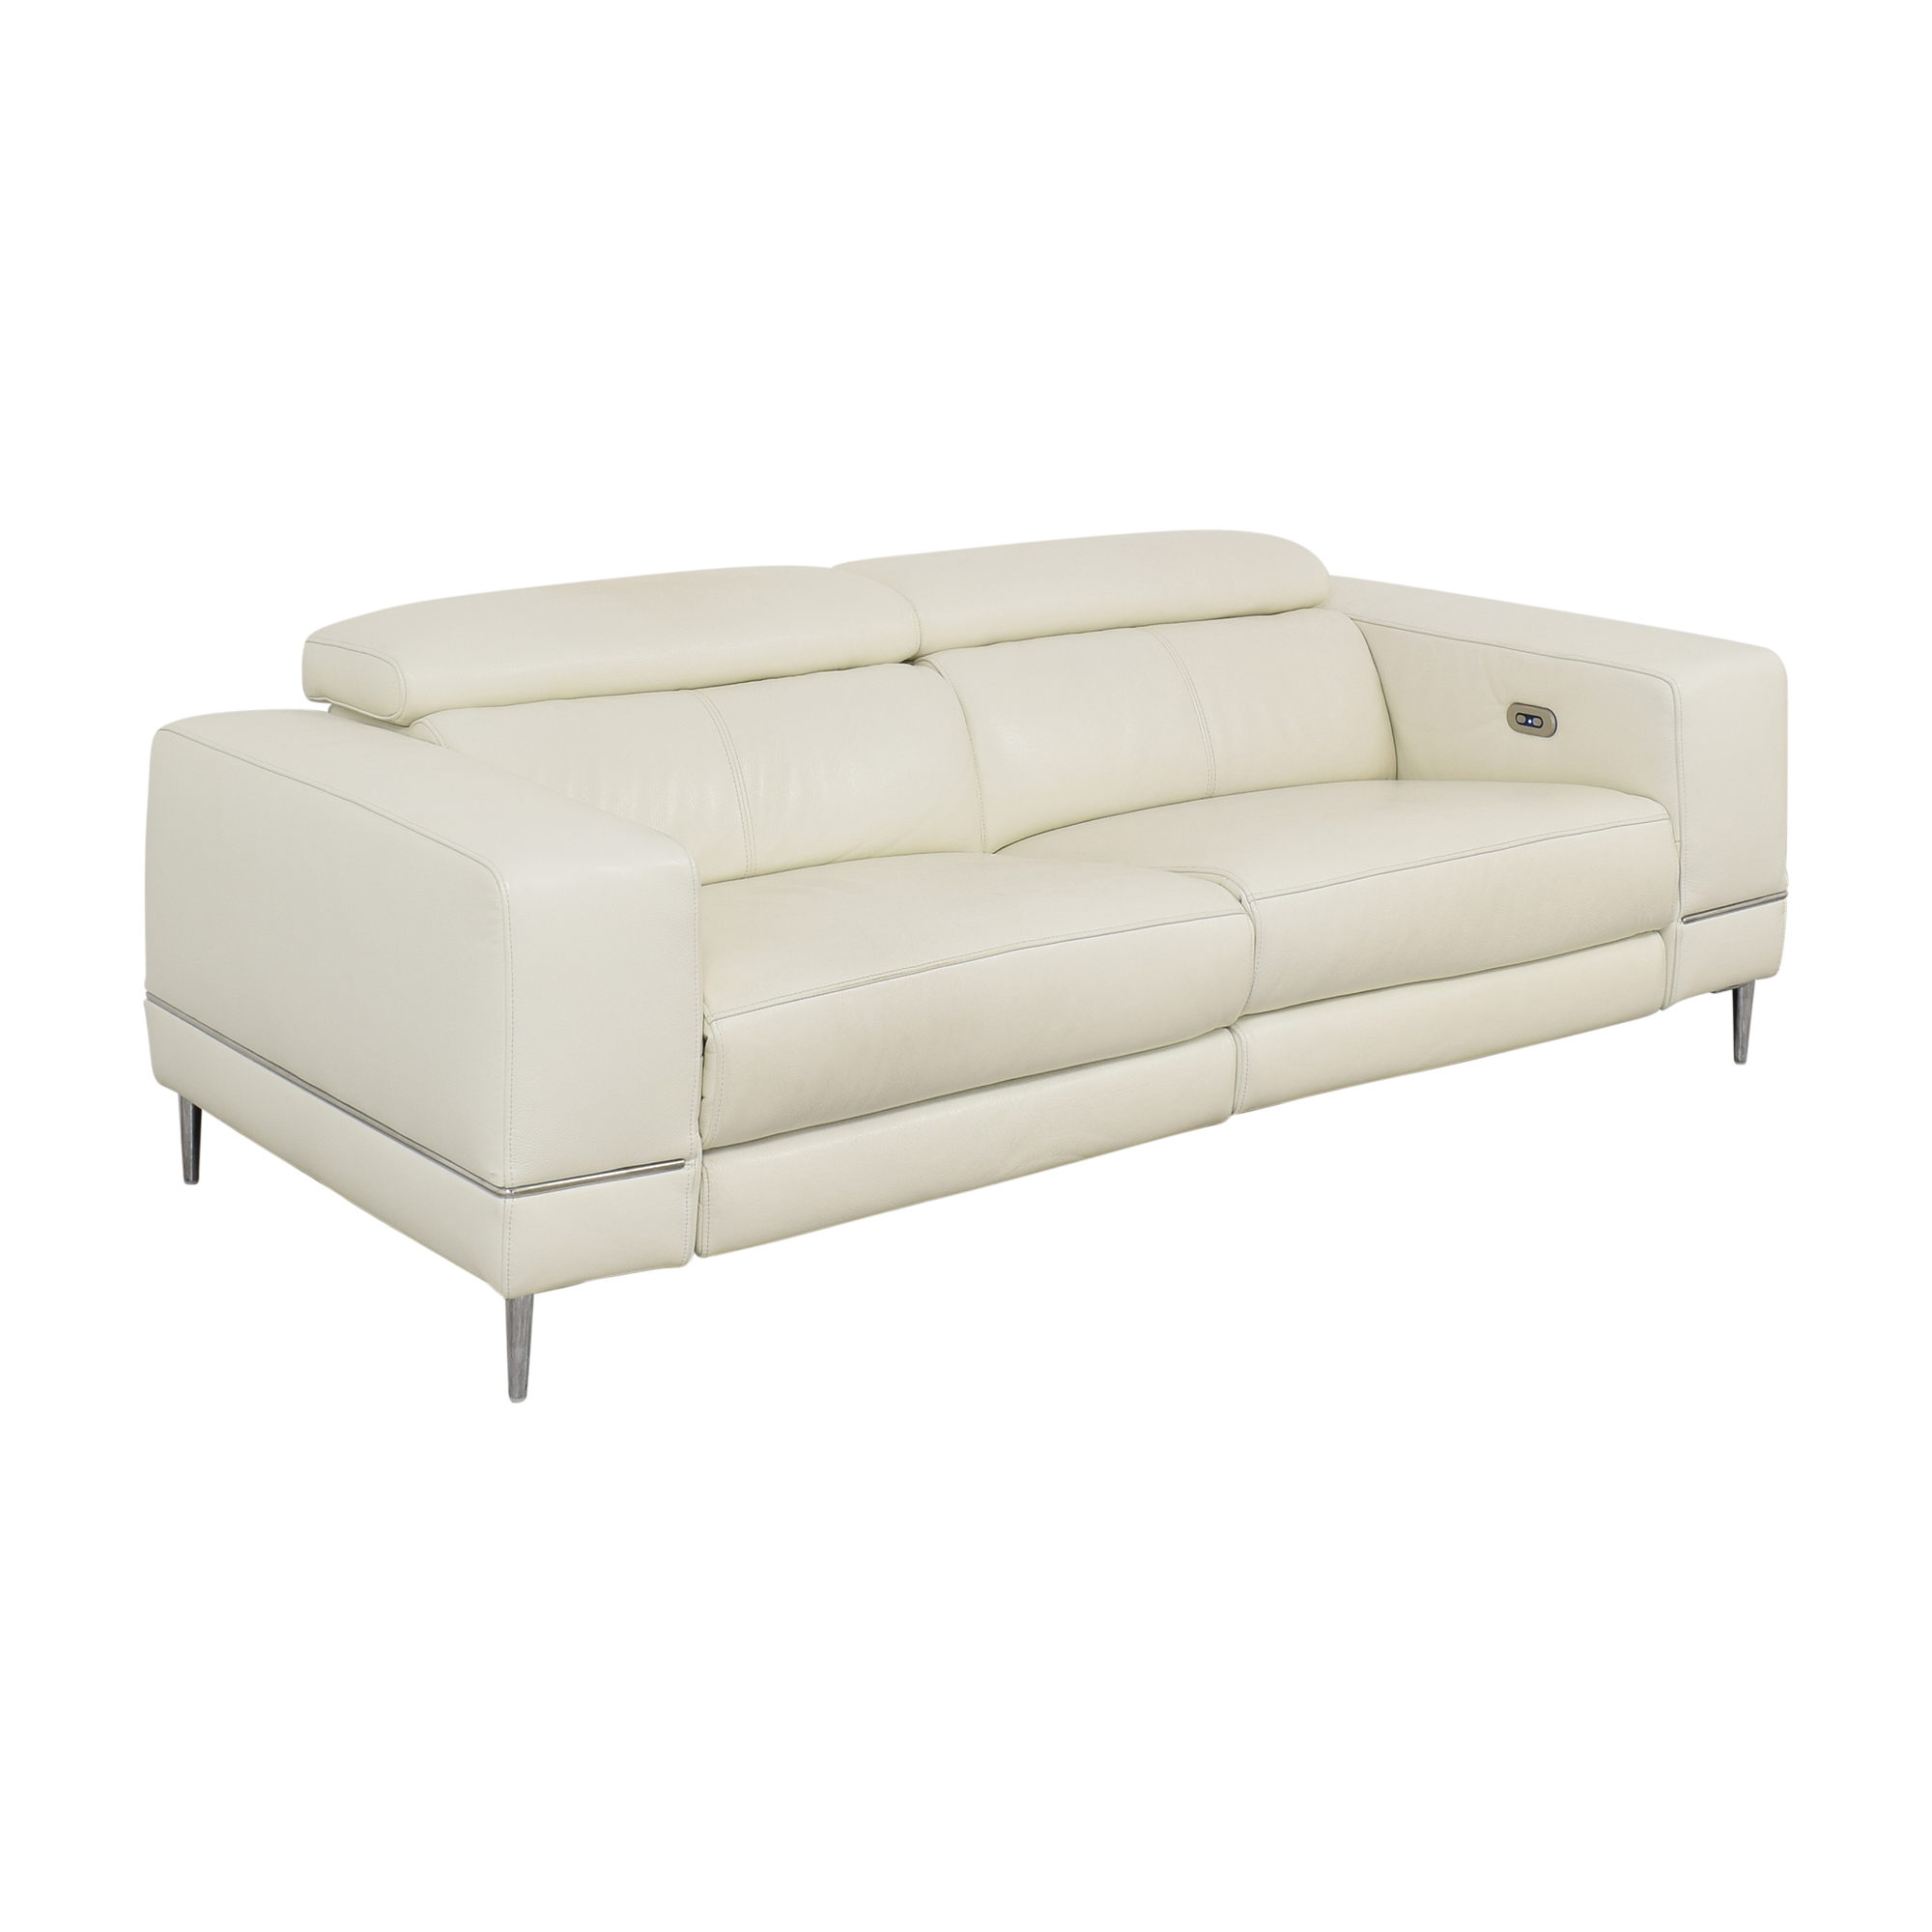 Modani Modani Bergamo Motion Sofa White nj